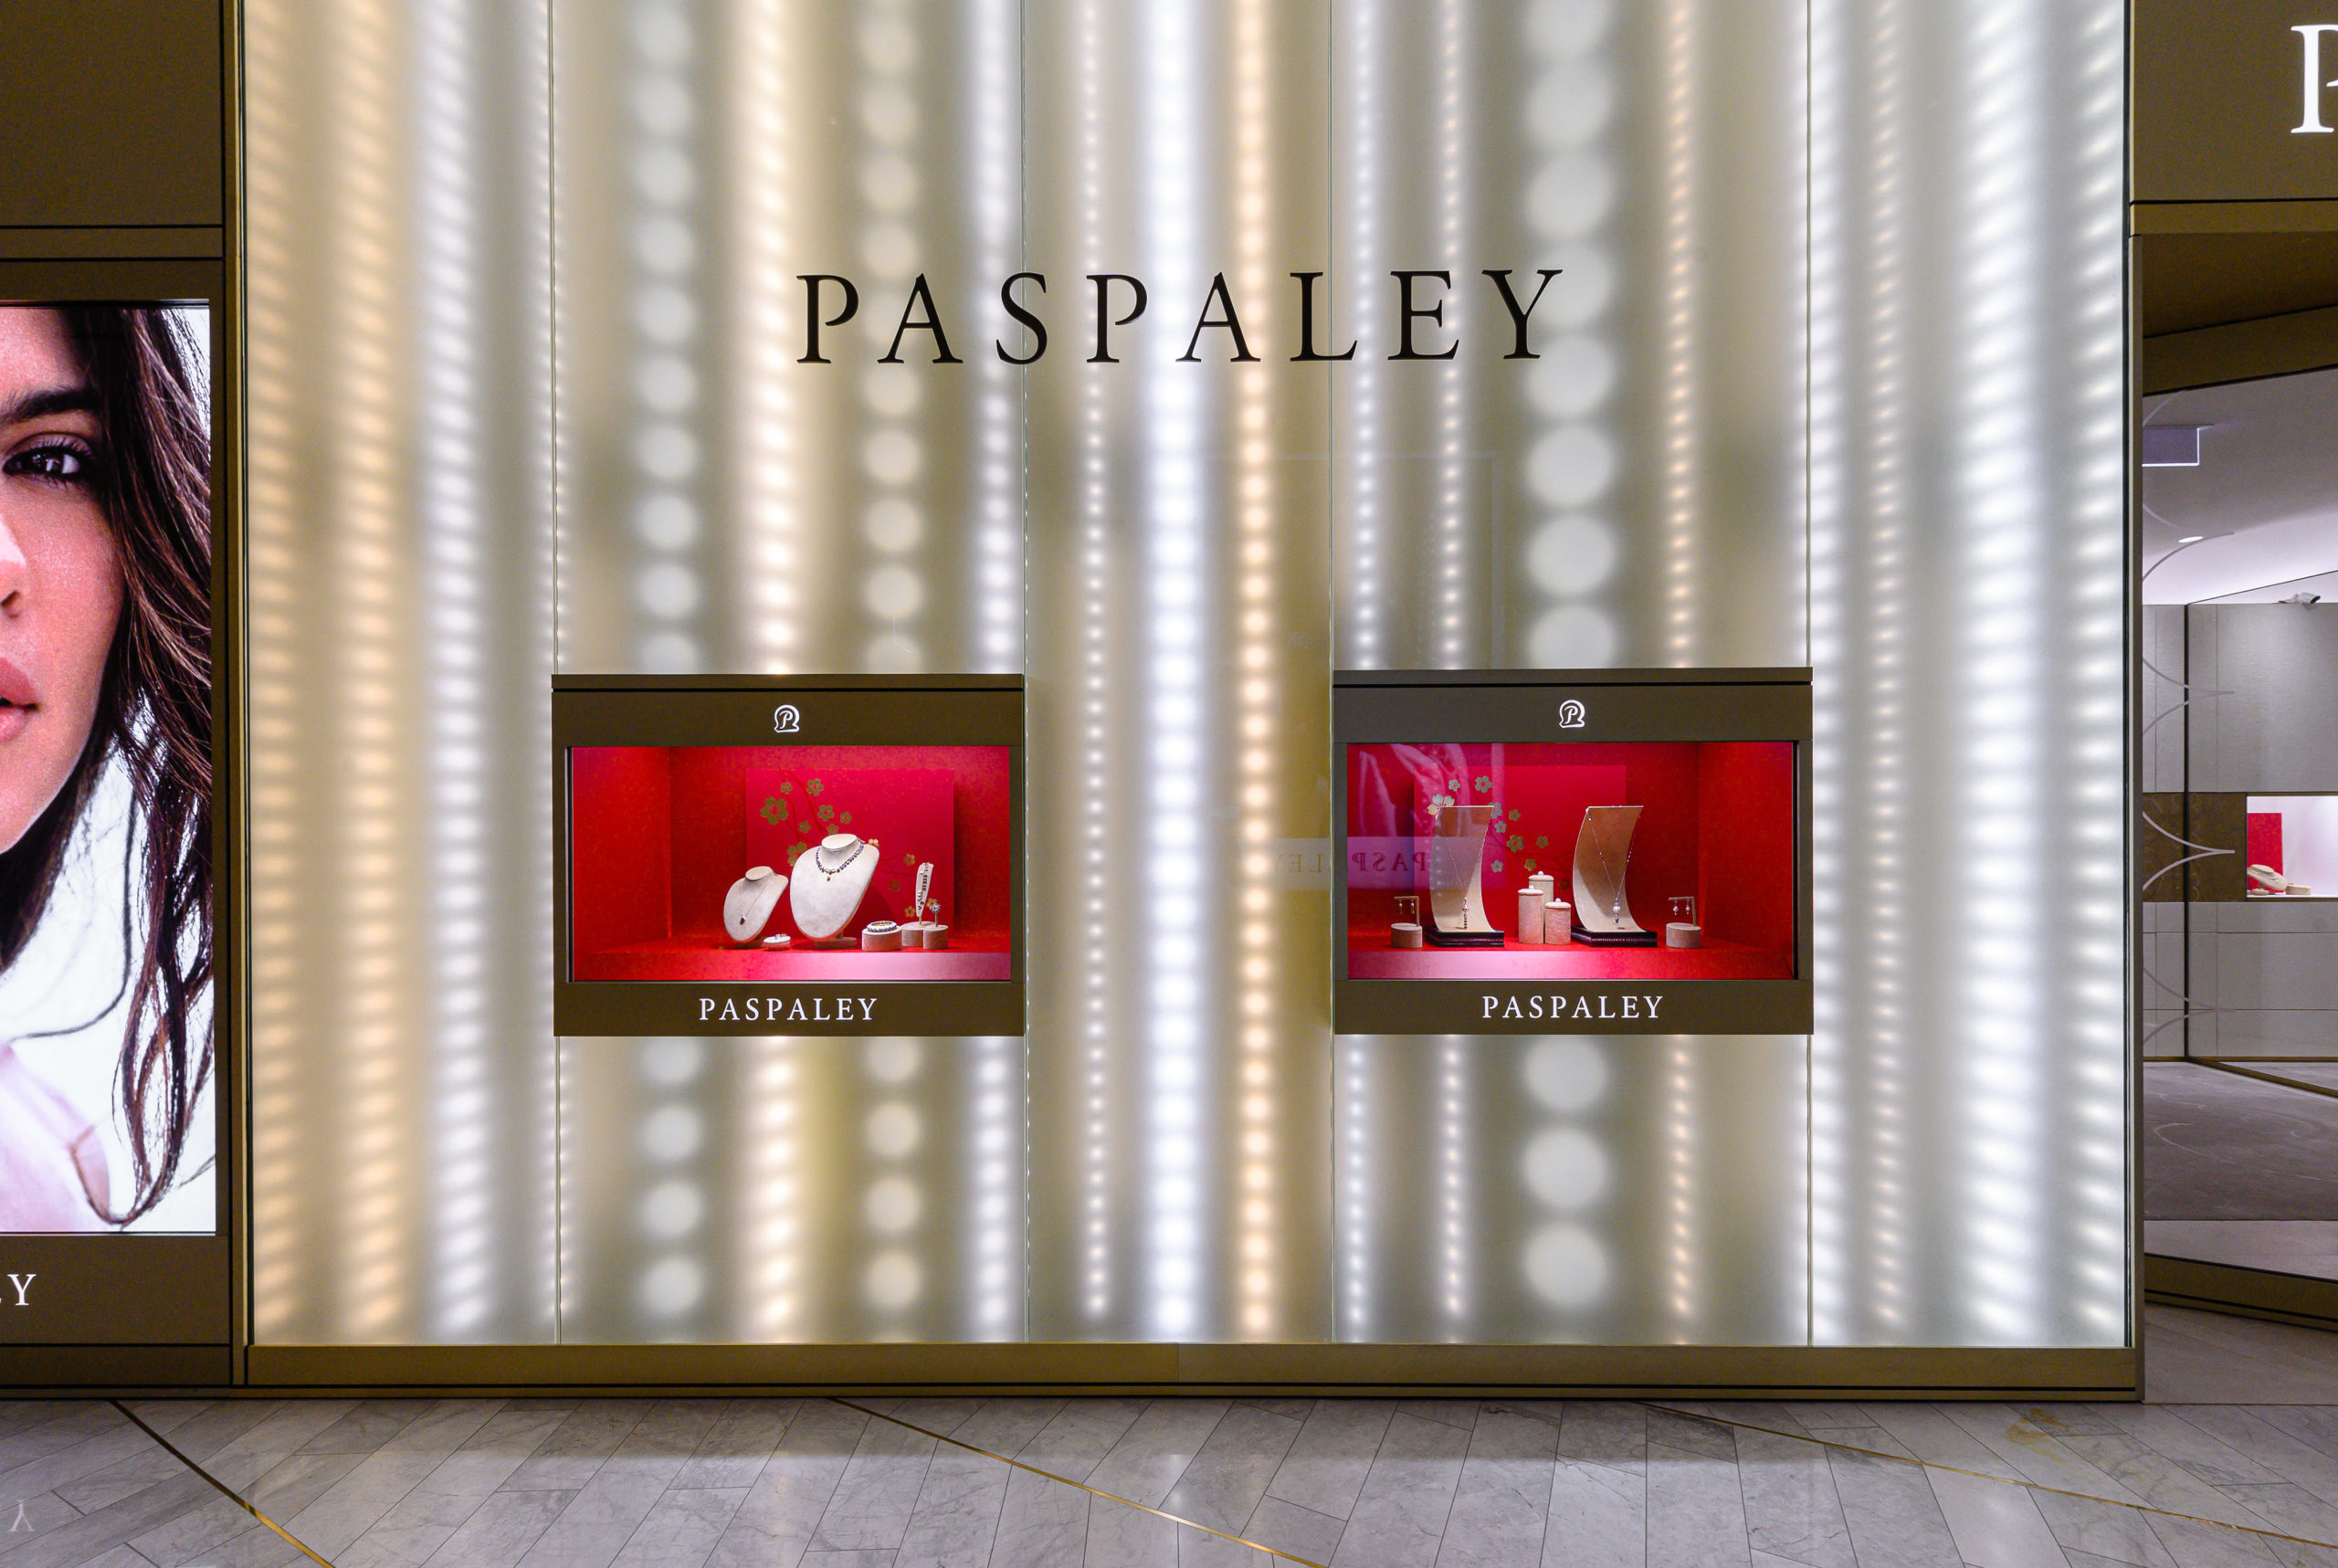 Paspaley Boutique Crown Sydney 28.01.2021 ELT 8686